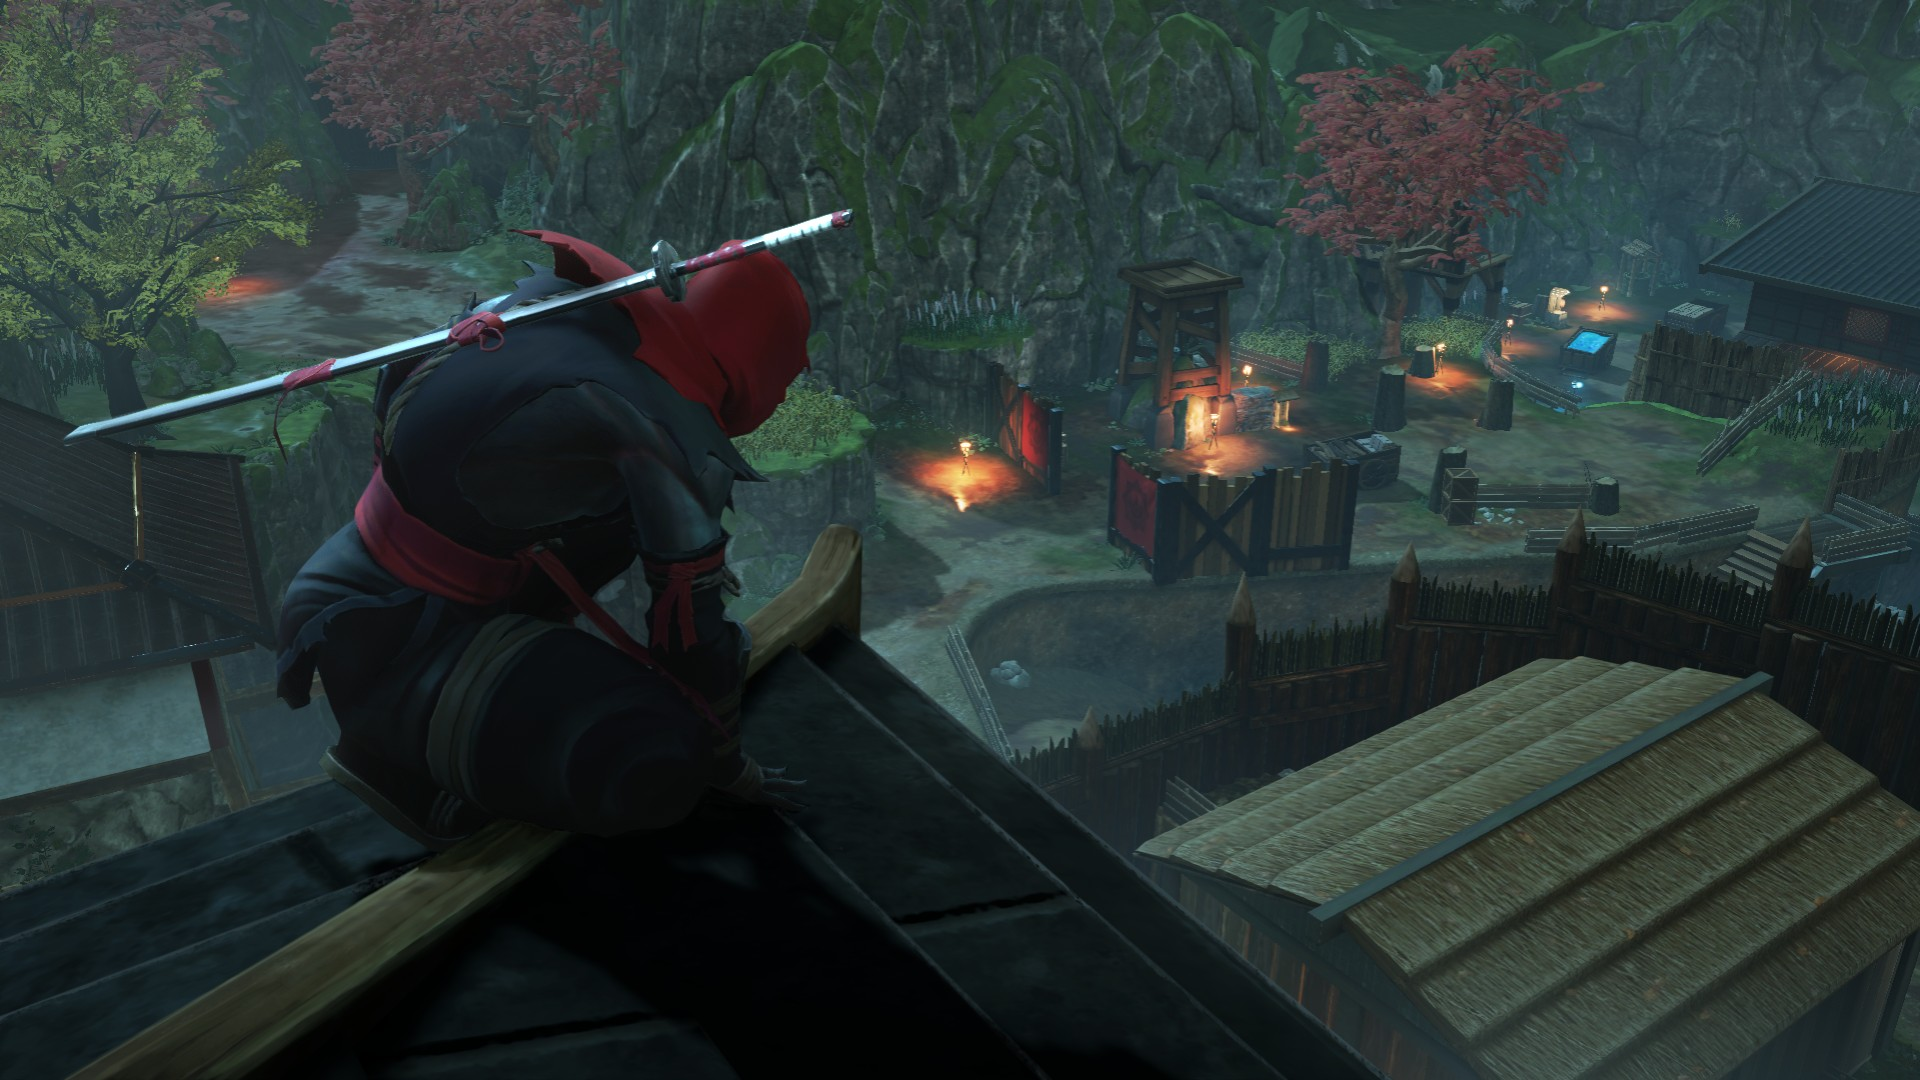 Aragami 2 is coming to Xbox Game Pass & First Extended Look at Gameplay - Lince Works